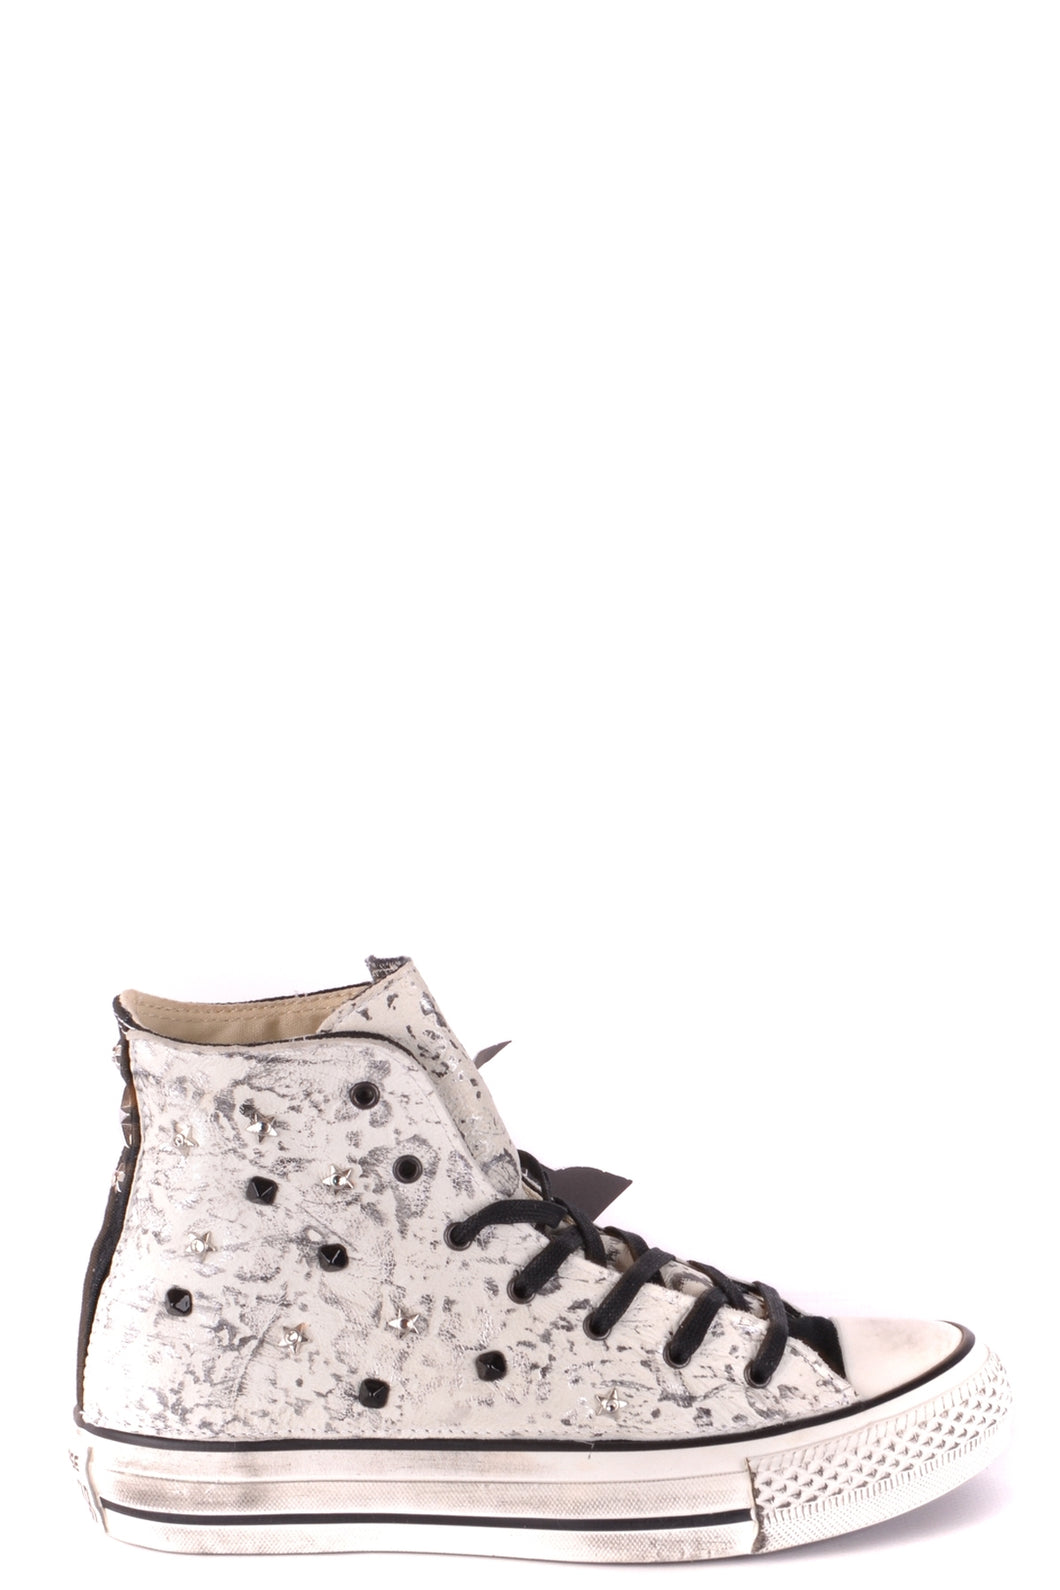 New Converse Women's White with Black High Tops, US size 5.5 - Junkdrawercoolfinds.com